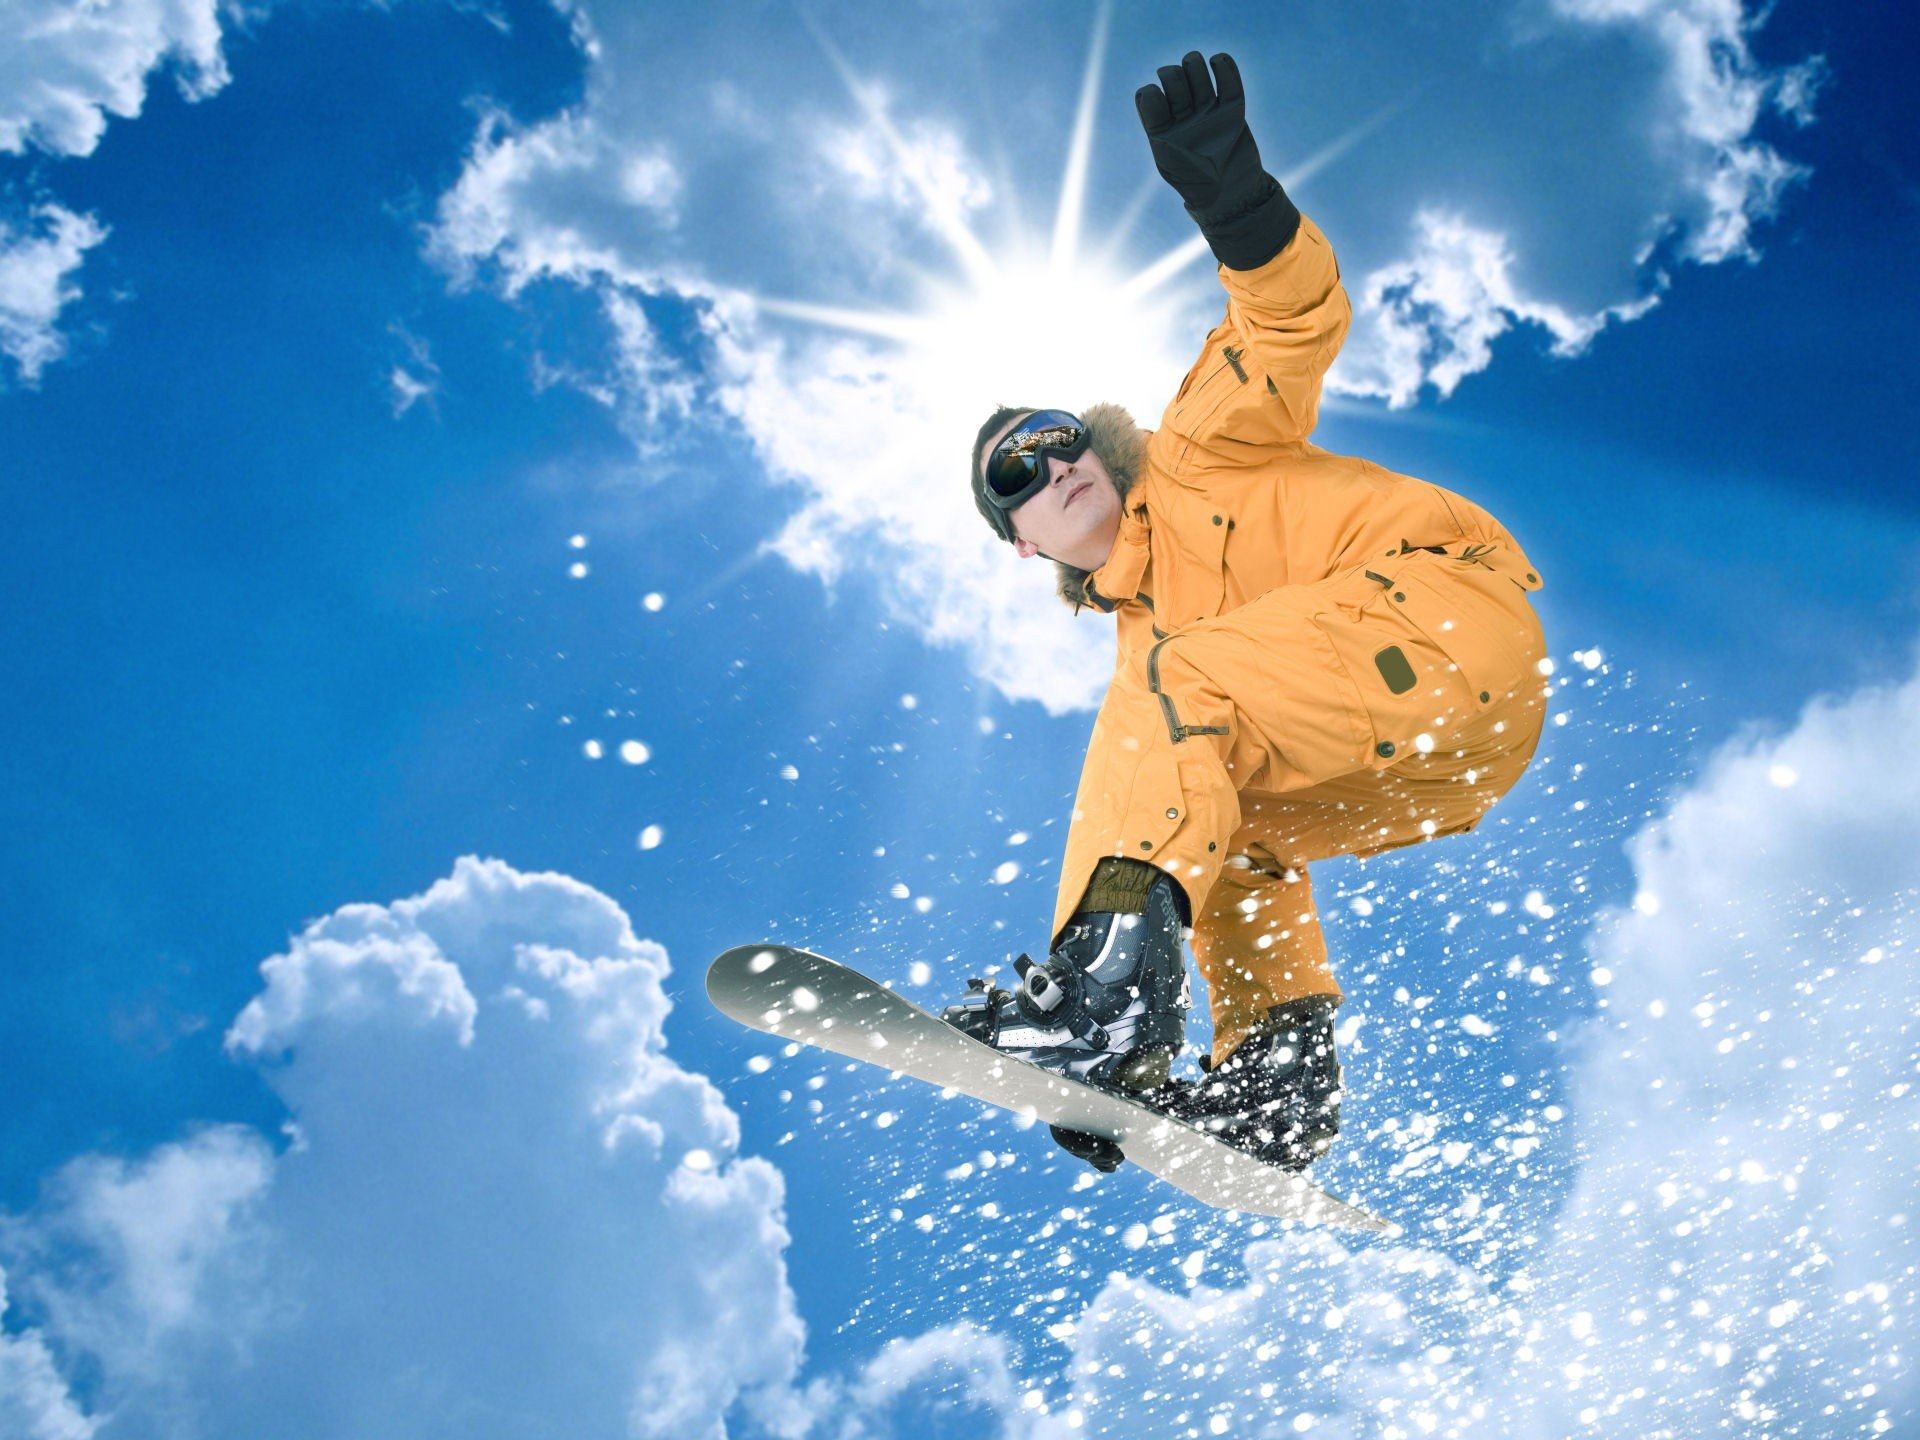 Free Snowboarding High Quality Wallpaper Id55820 For Hd